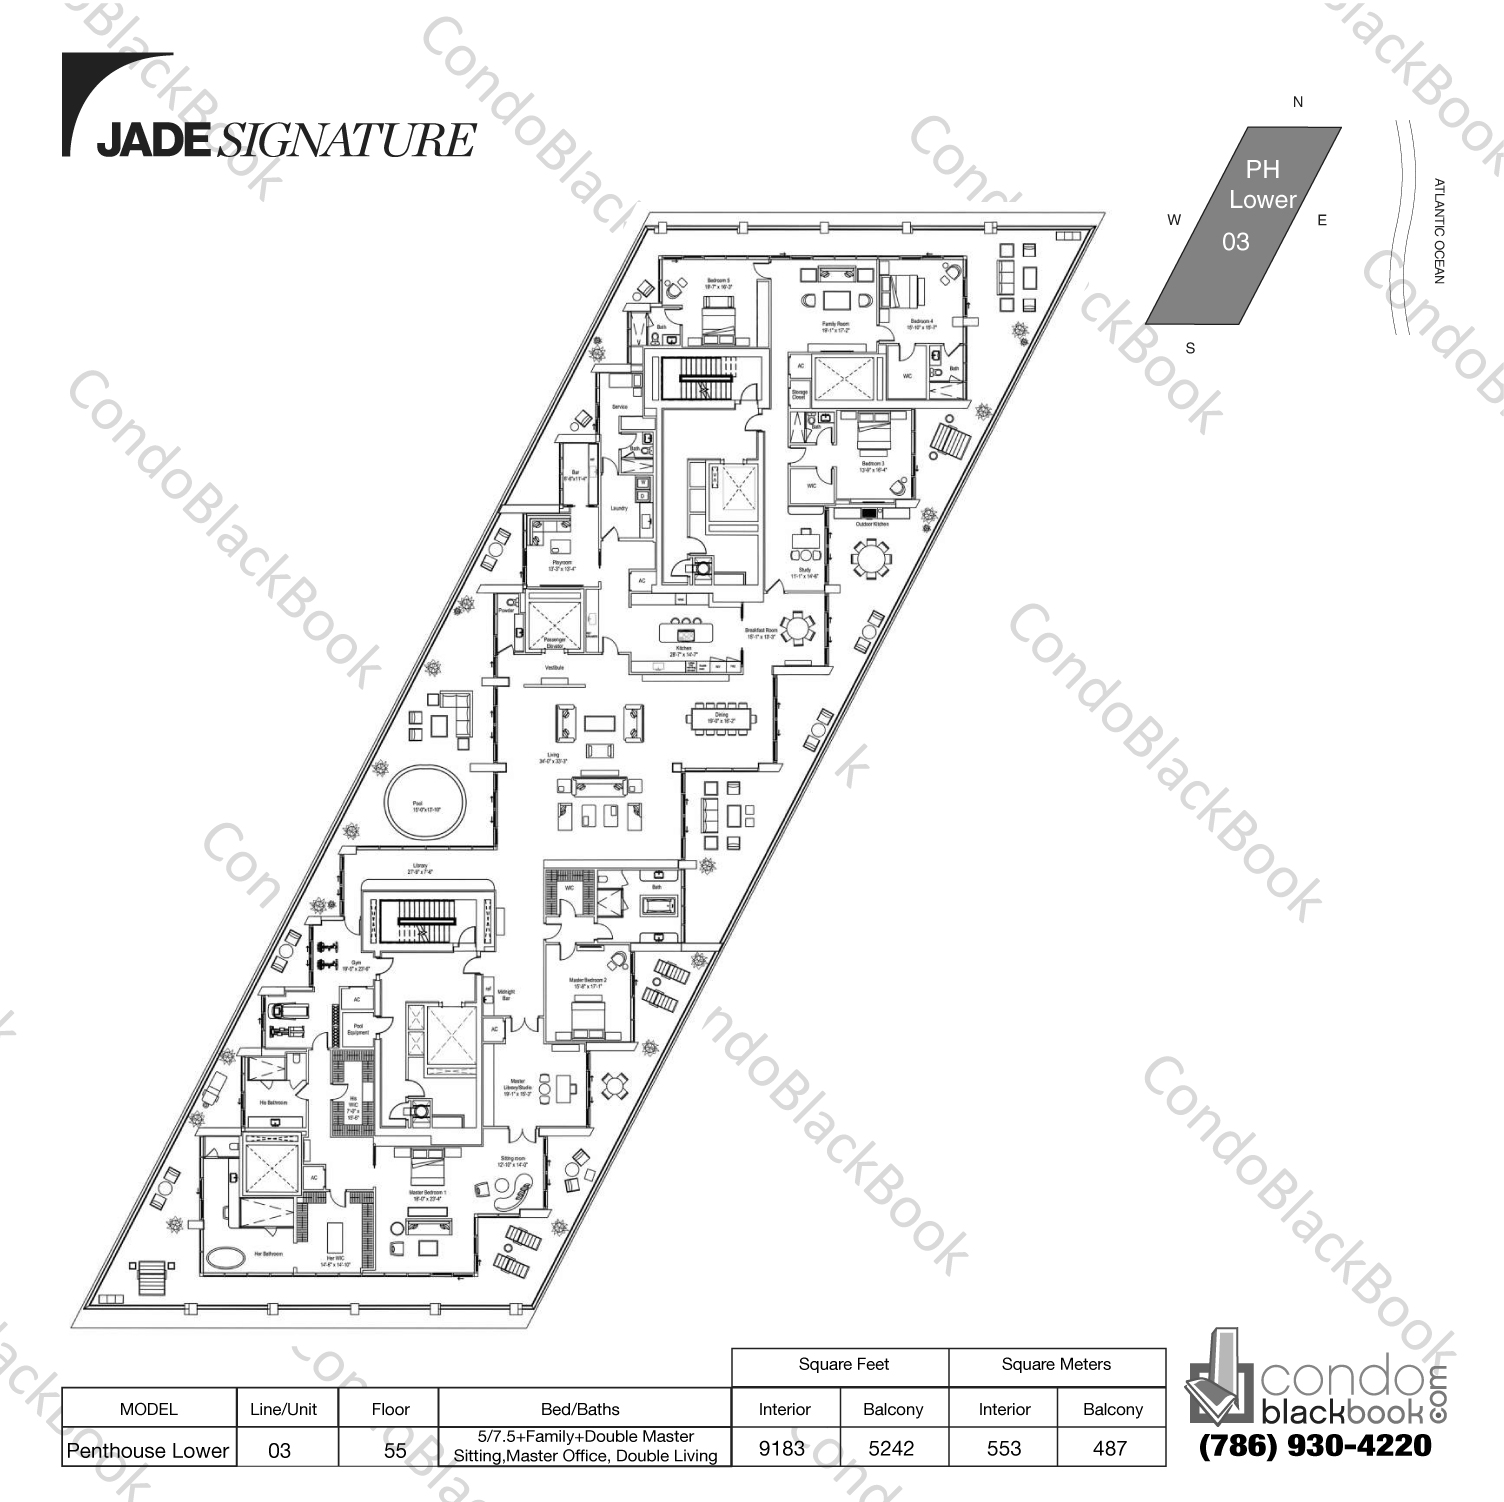 Floor plan for Jade Signature Sunny Isles Beach, model  Penthouse Lower, line 03, 5/7.5+Family+Double Master Sitting,Master Office bedrooms, 9183 sq ft